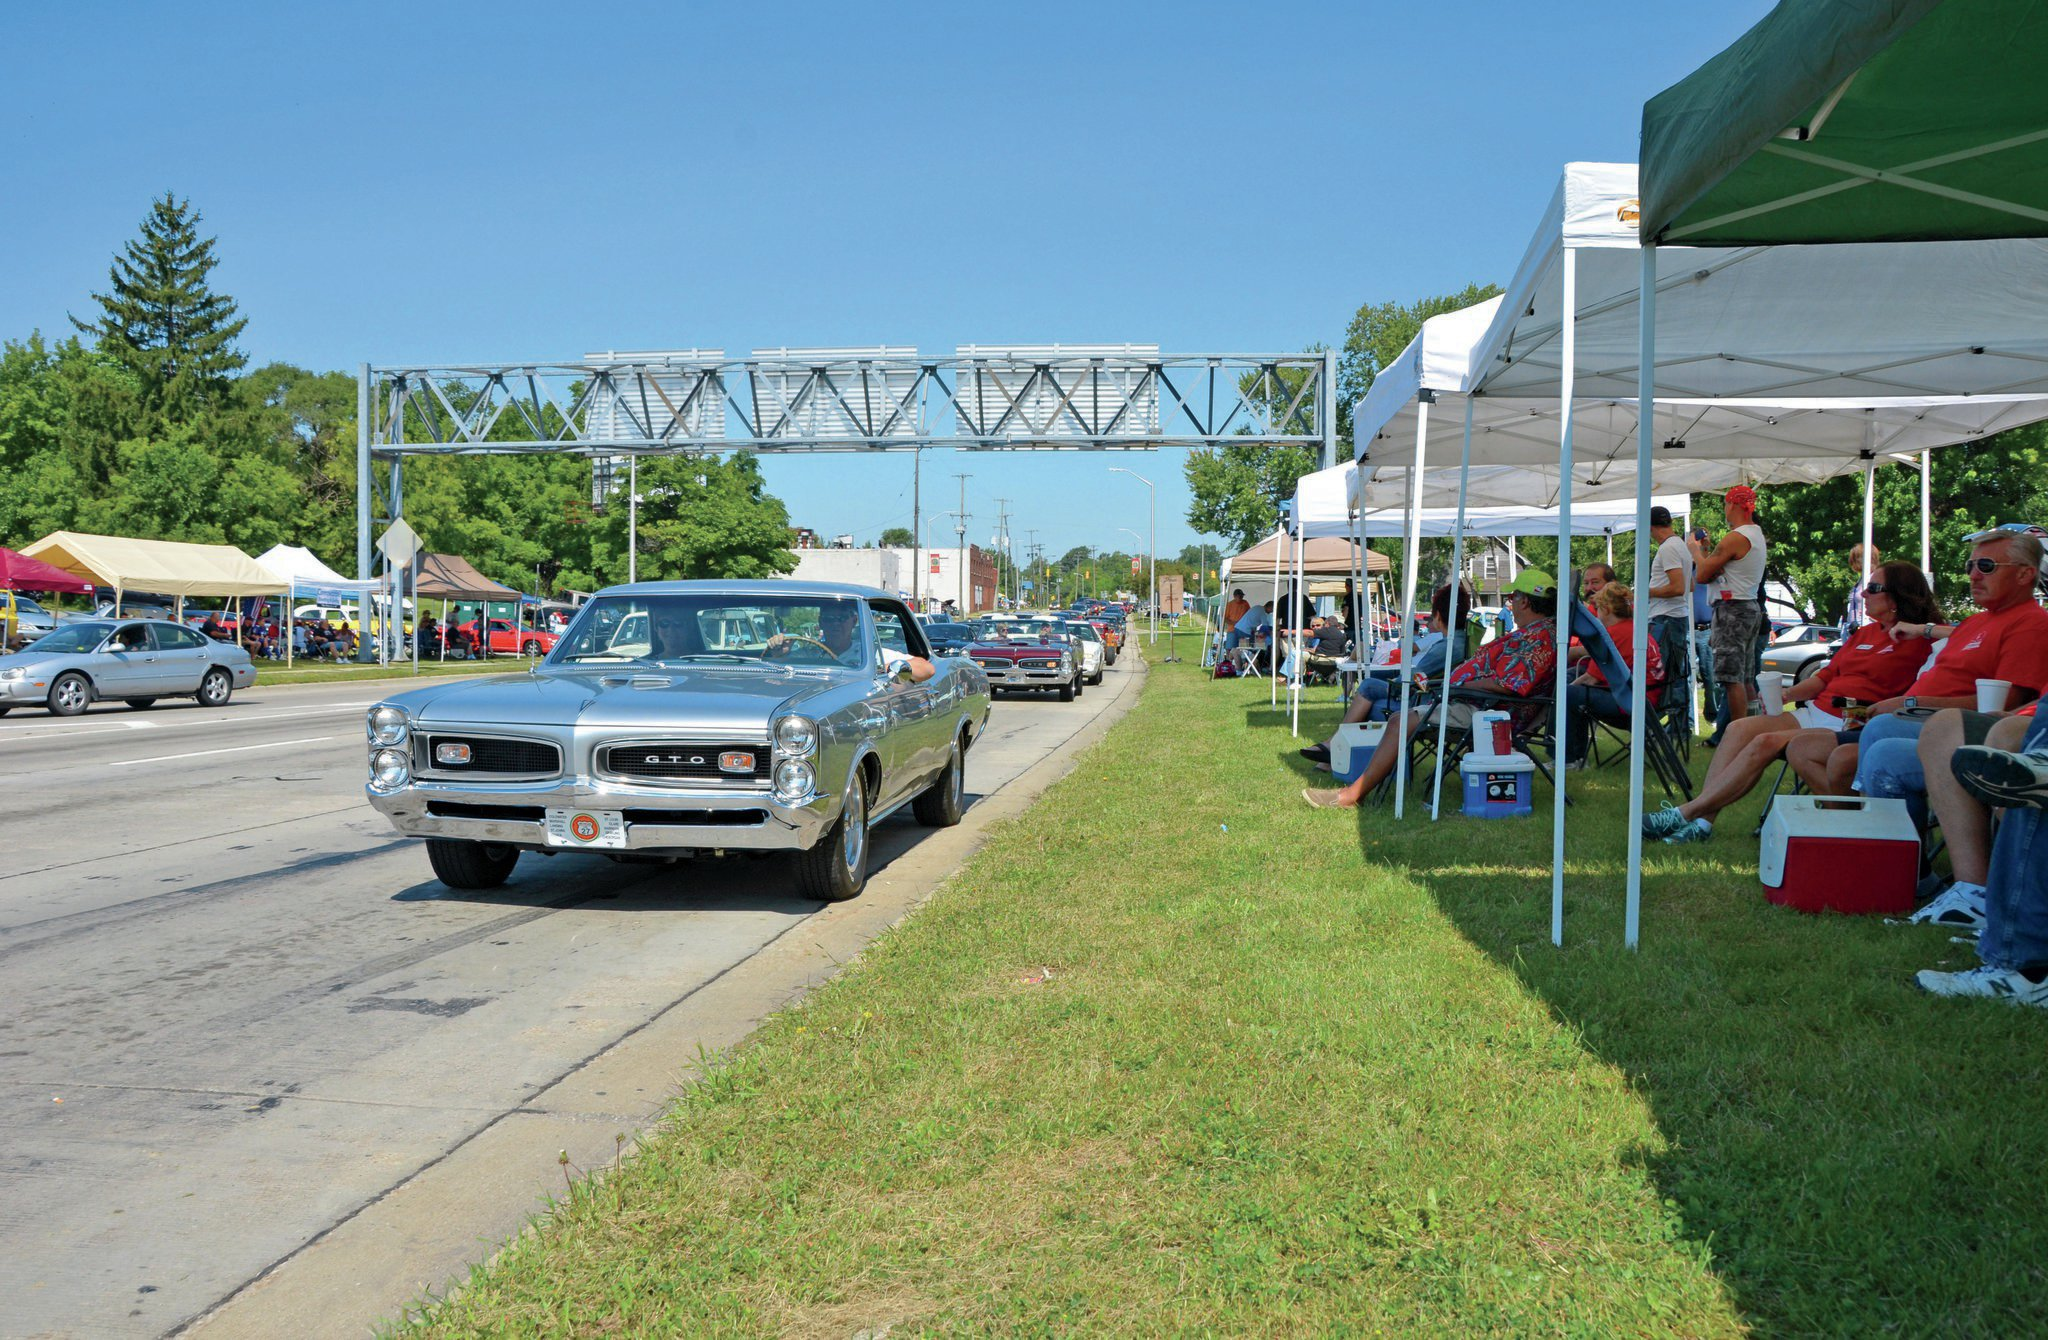 A '66 hardtop and a '67 convertible GTO cruise past appreciative spectators on their home turf, the Woodward Avenue business loop in Pontiac, Michigan. This is what Woodwarding is all about.